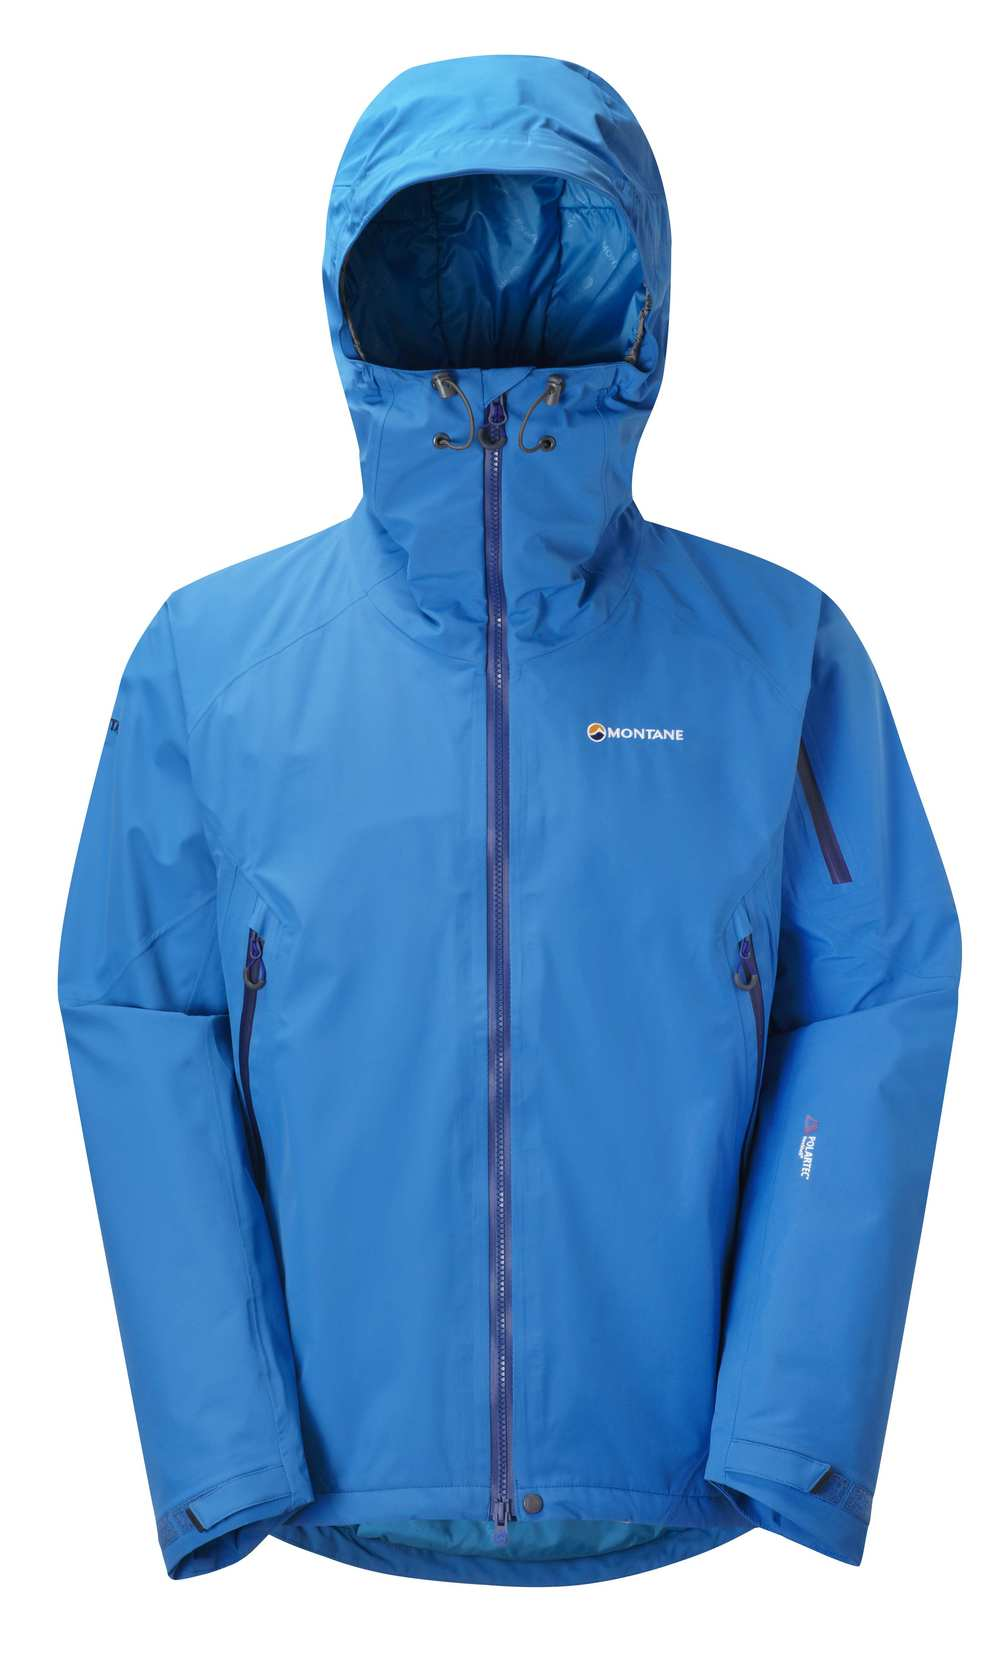 Montane mens_axion_neo_apha_jacket_electric_blue.jpg